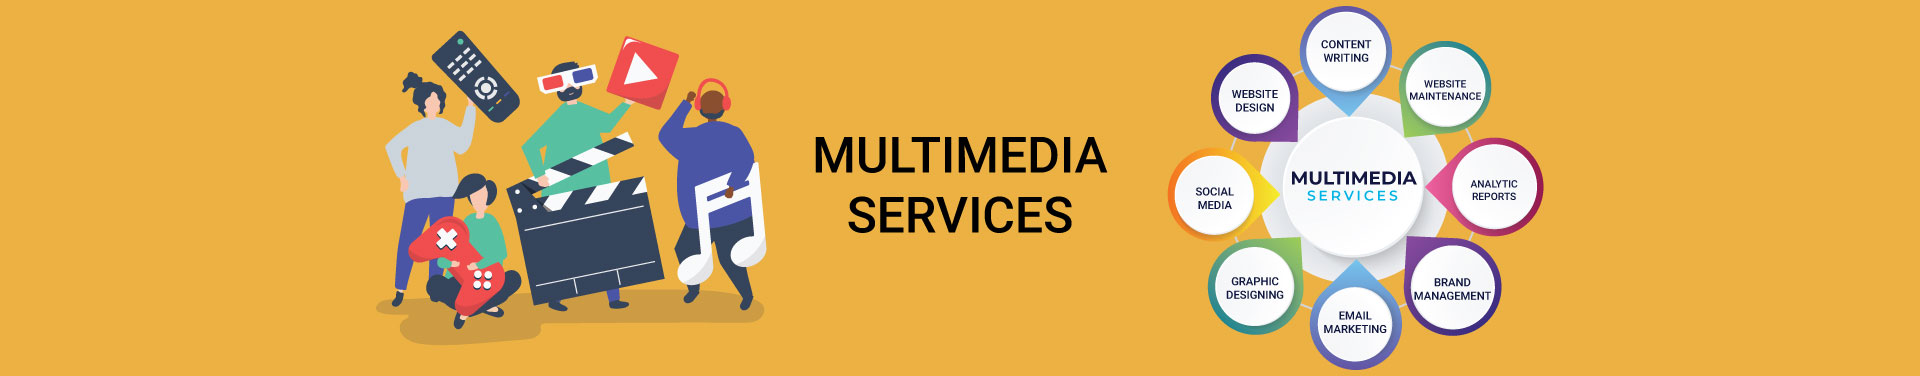 Multimedia Presentation Services